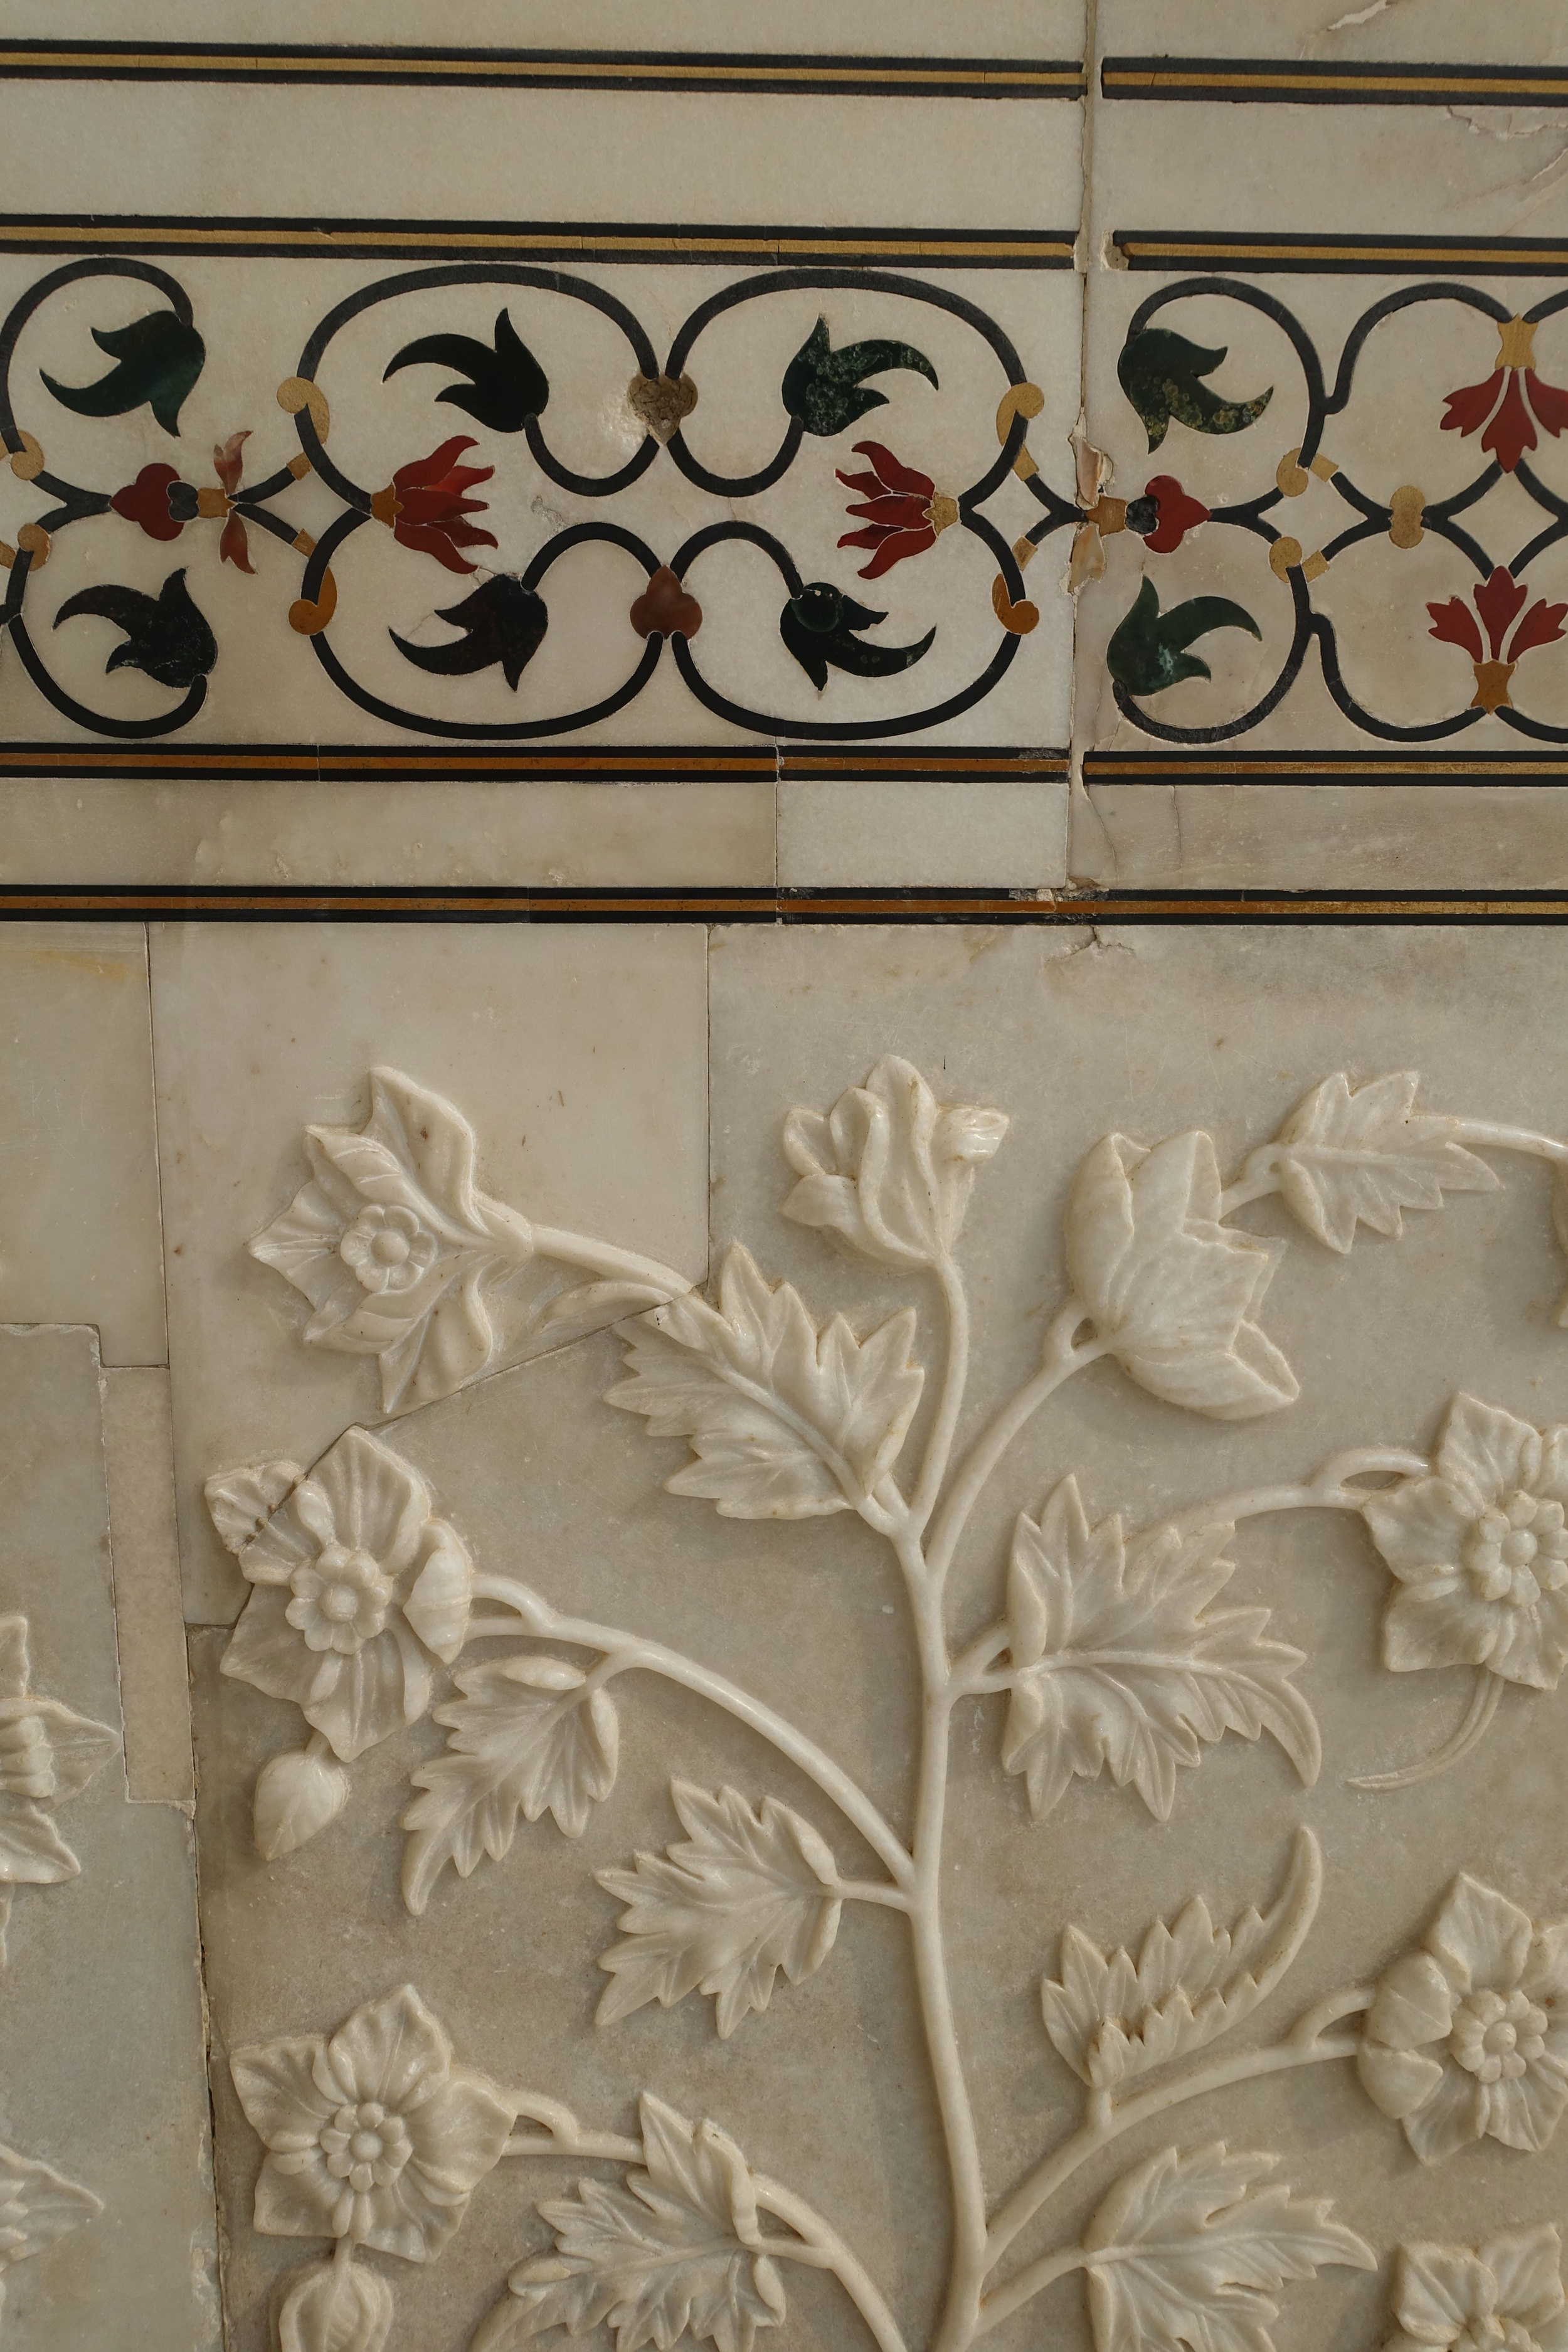 Inlaid semi precious stones and hand carved white marble panels decorated with flowers so   would never be without flowers, are everywhere.